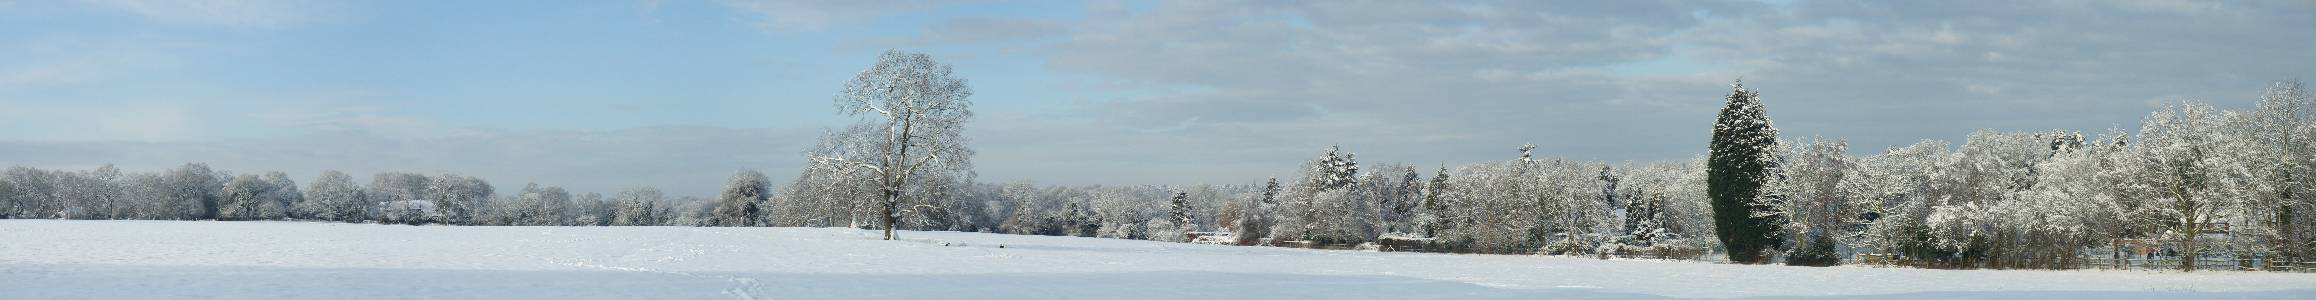 Name: snowyfield. Camera make:   Model:   Software: ArcSoft Panorama Maker 4